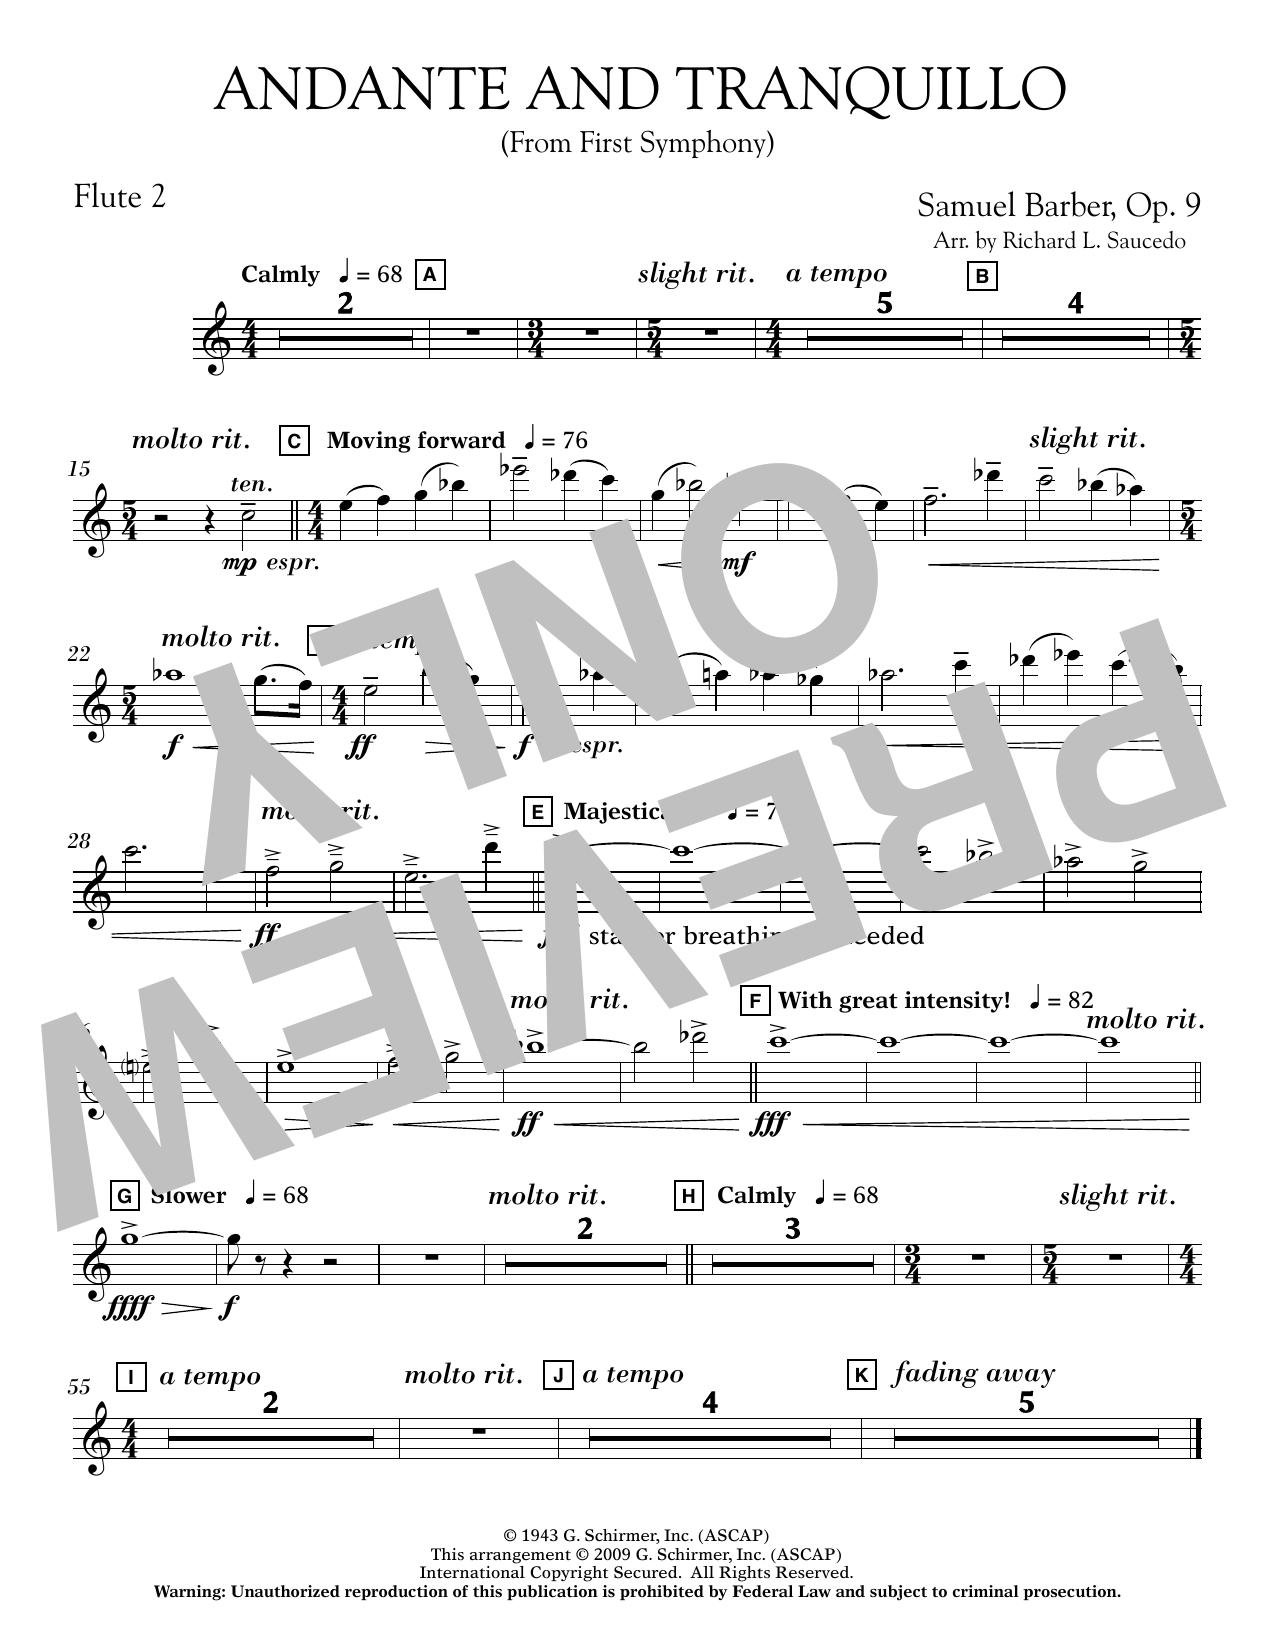 Andante and Tranquillo (from First Symphony) - Flute 2 Sheet Music